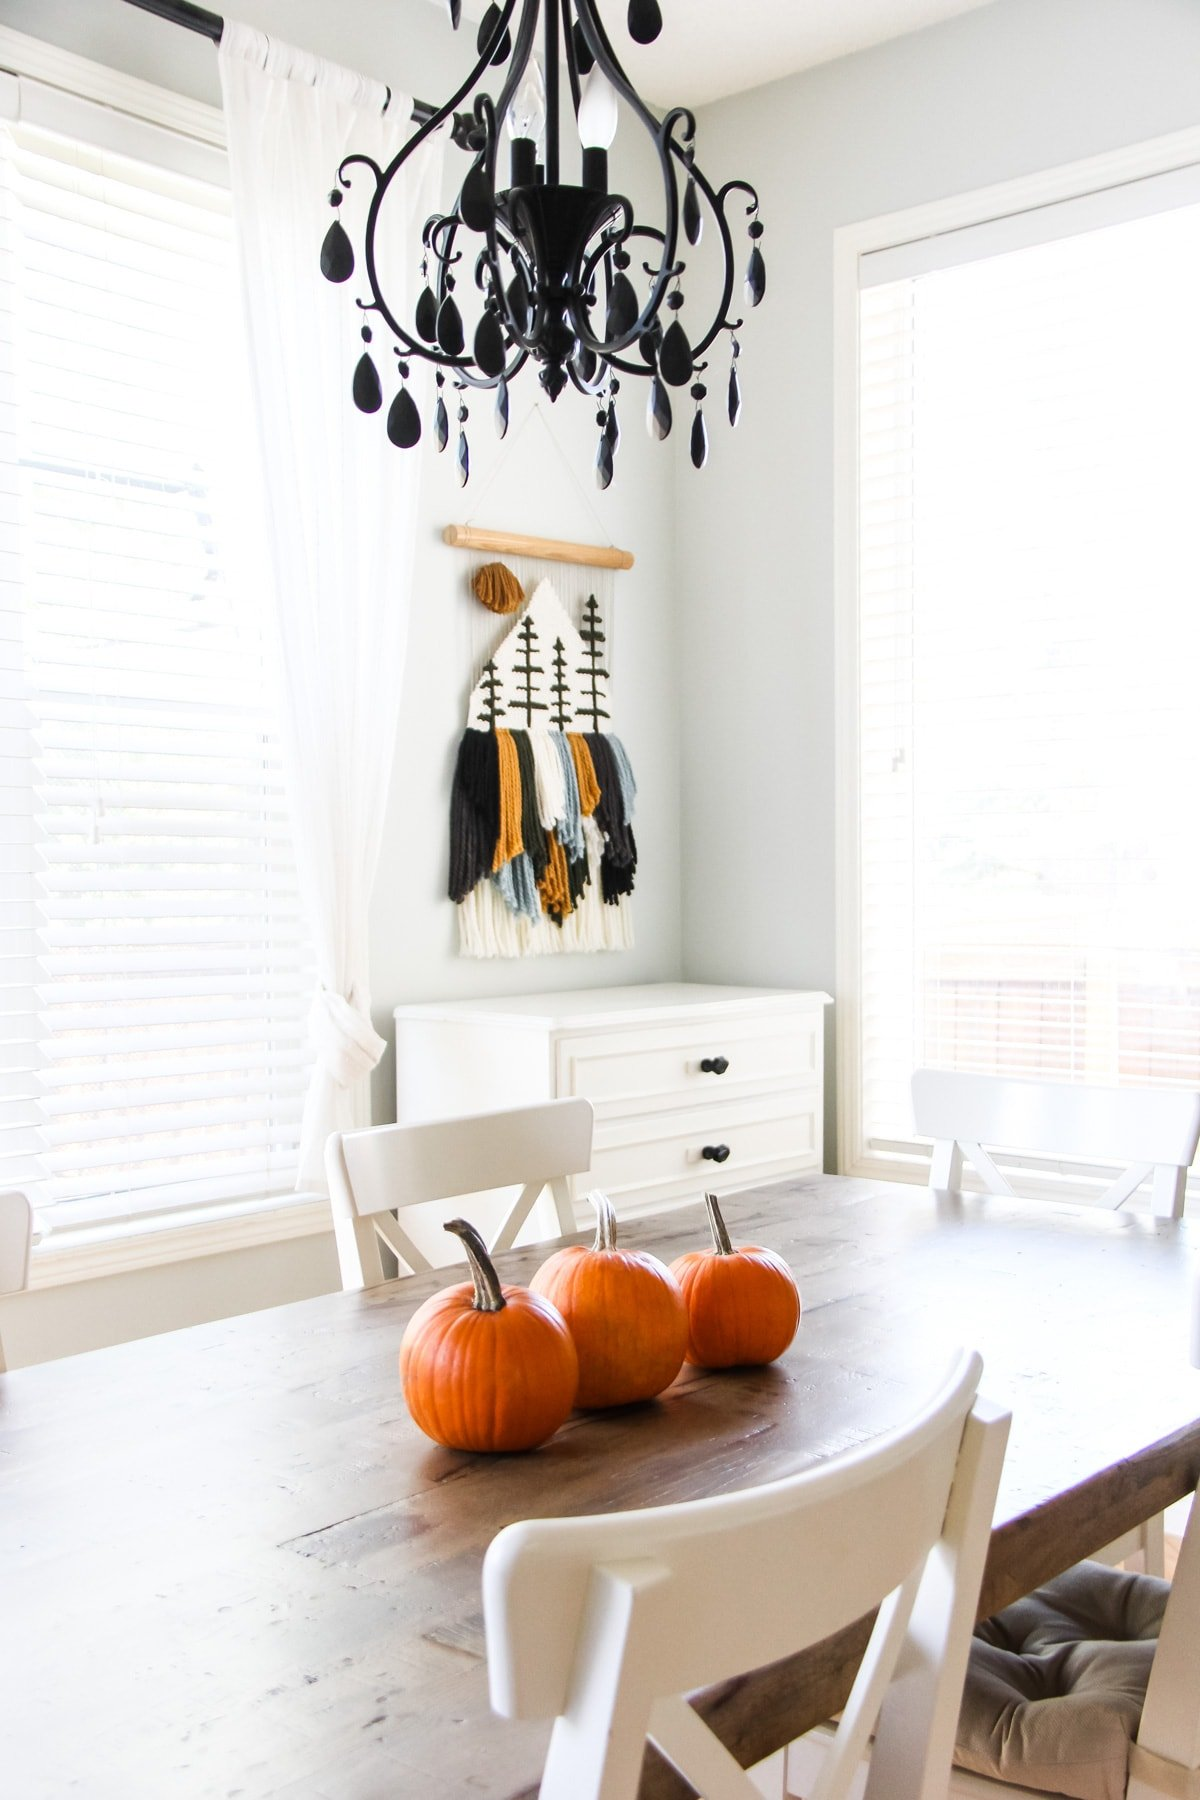 a fall home tour: a wooden kitchen table decorated with three mini pumpkins. in the foreground is a black chandelier. in the background is a yarn wall hanging